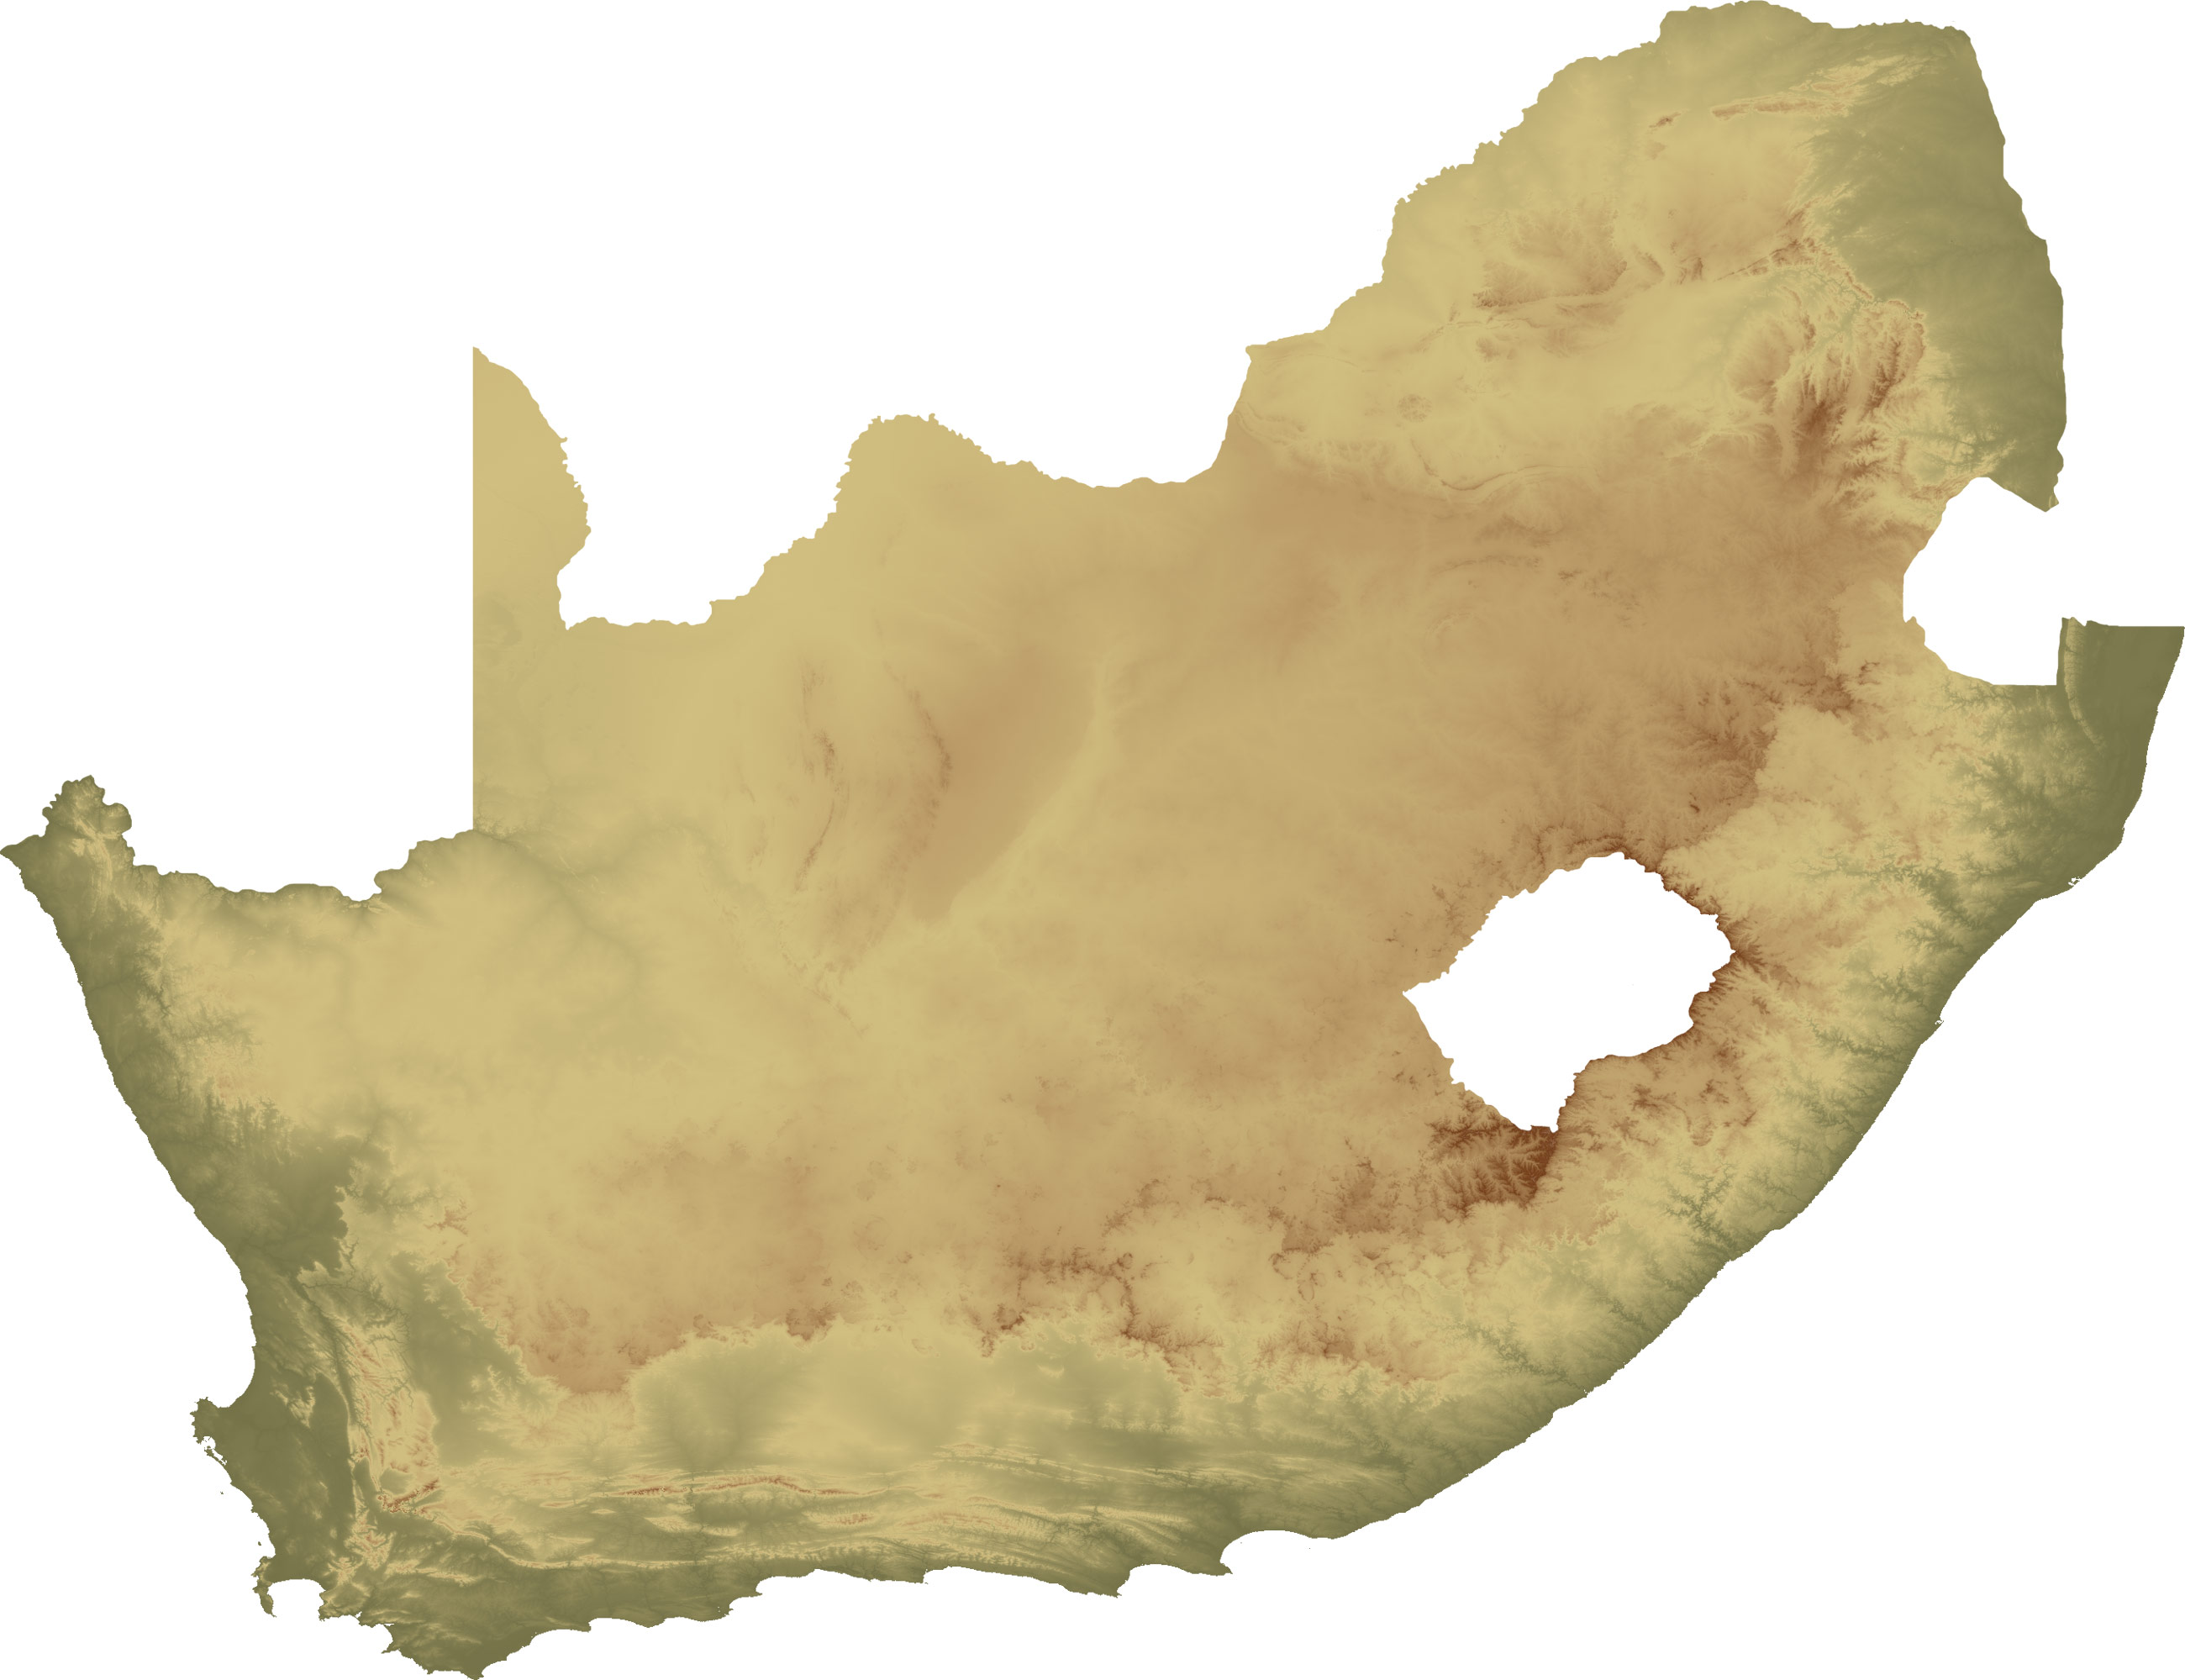 South Africa Topo Island large map